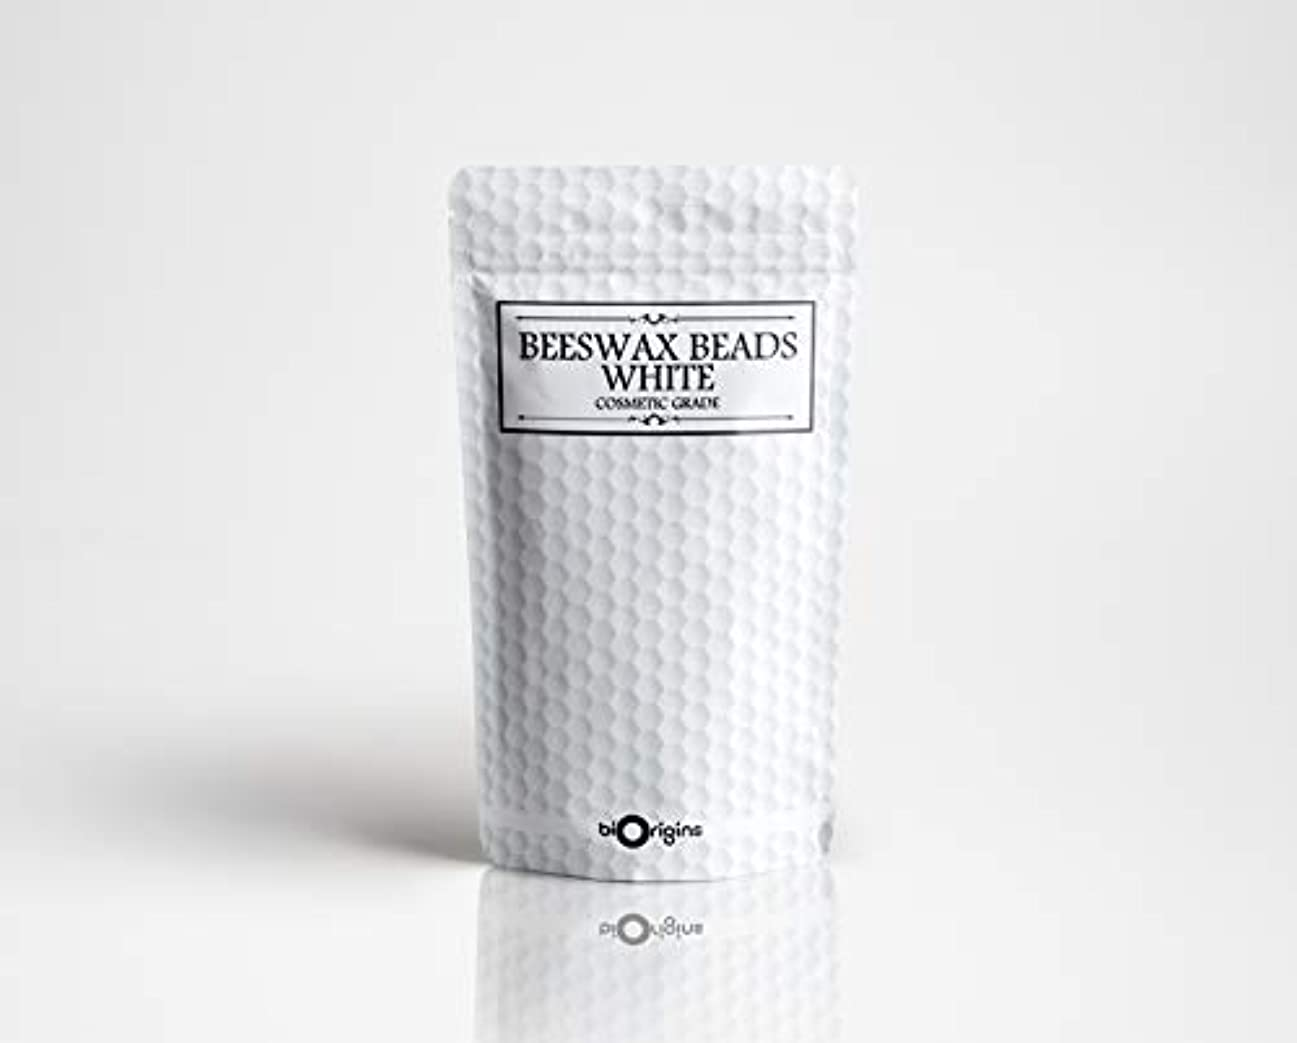 博覧会ボイド利用可能Beeswax Beads White - Cosmetic Grade - 100g